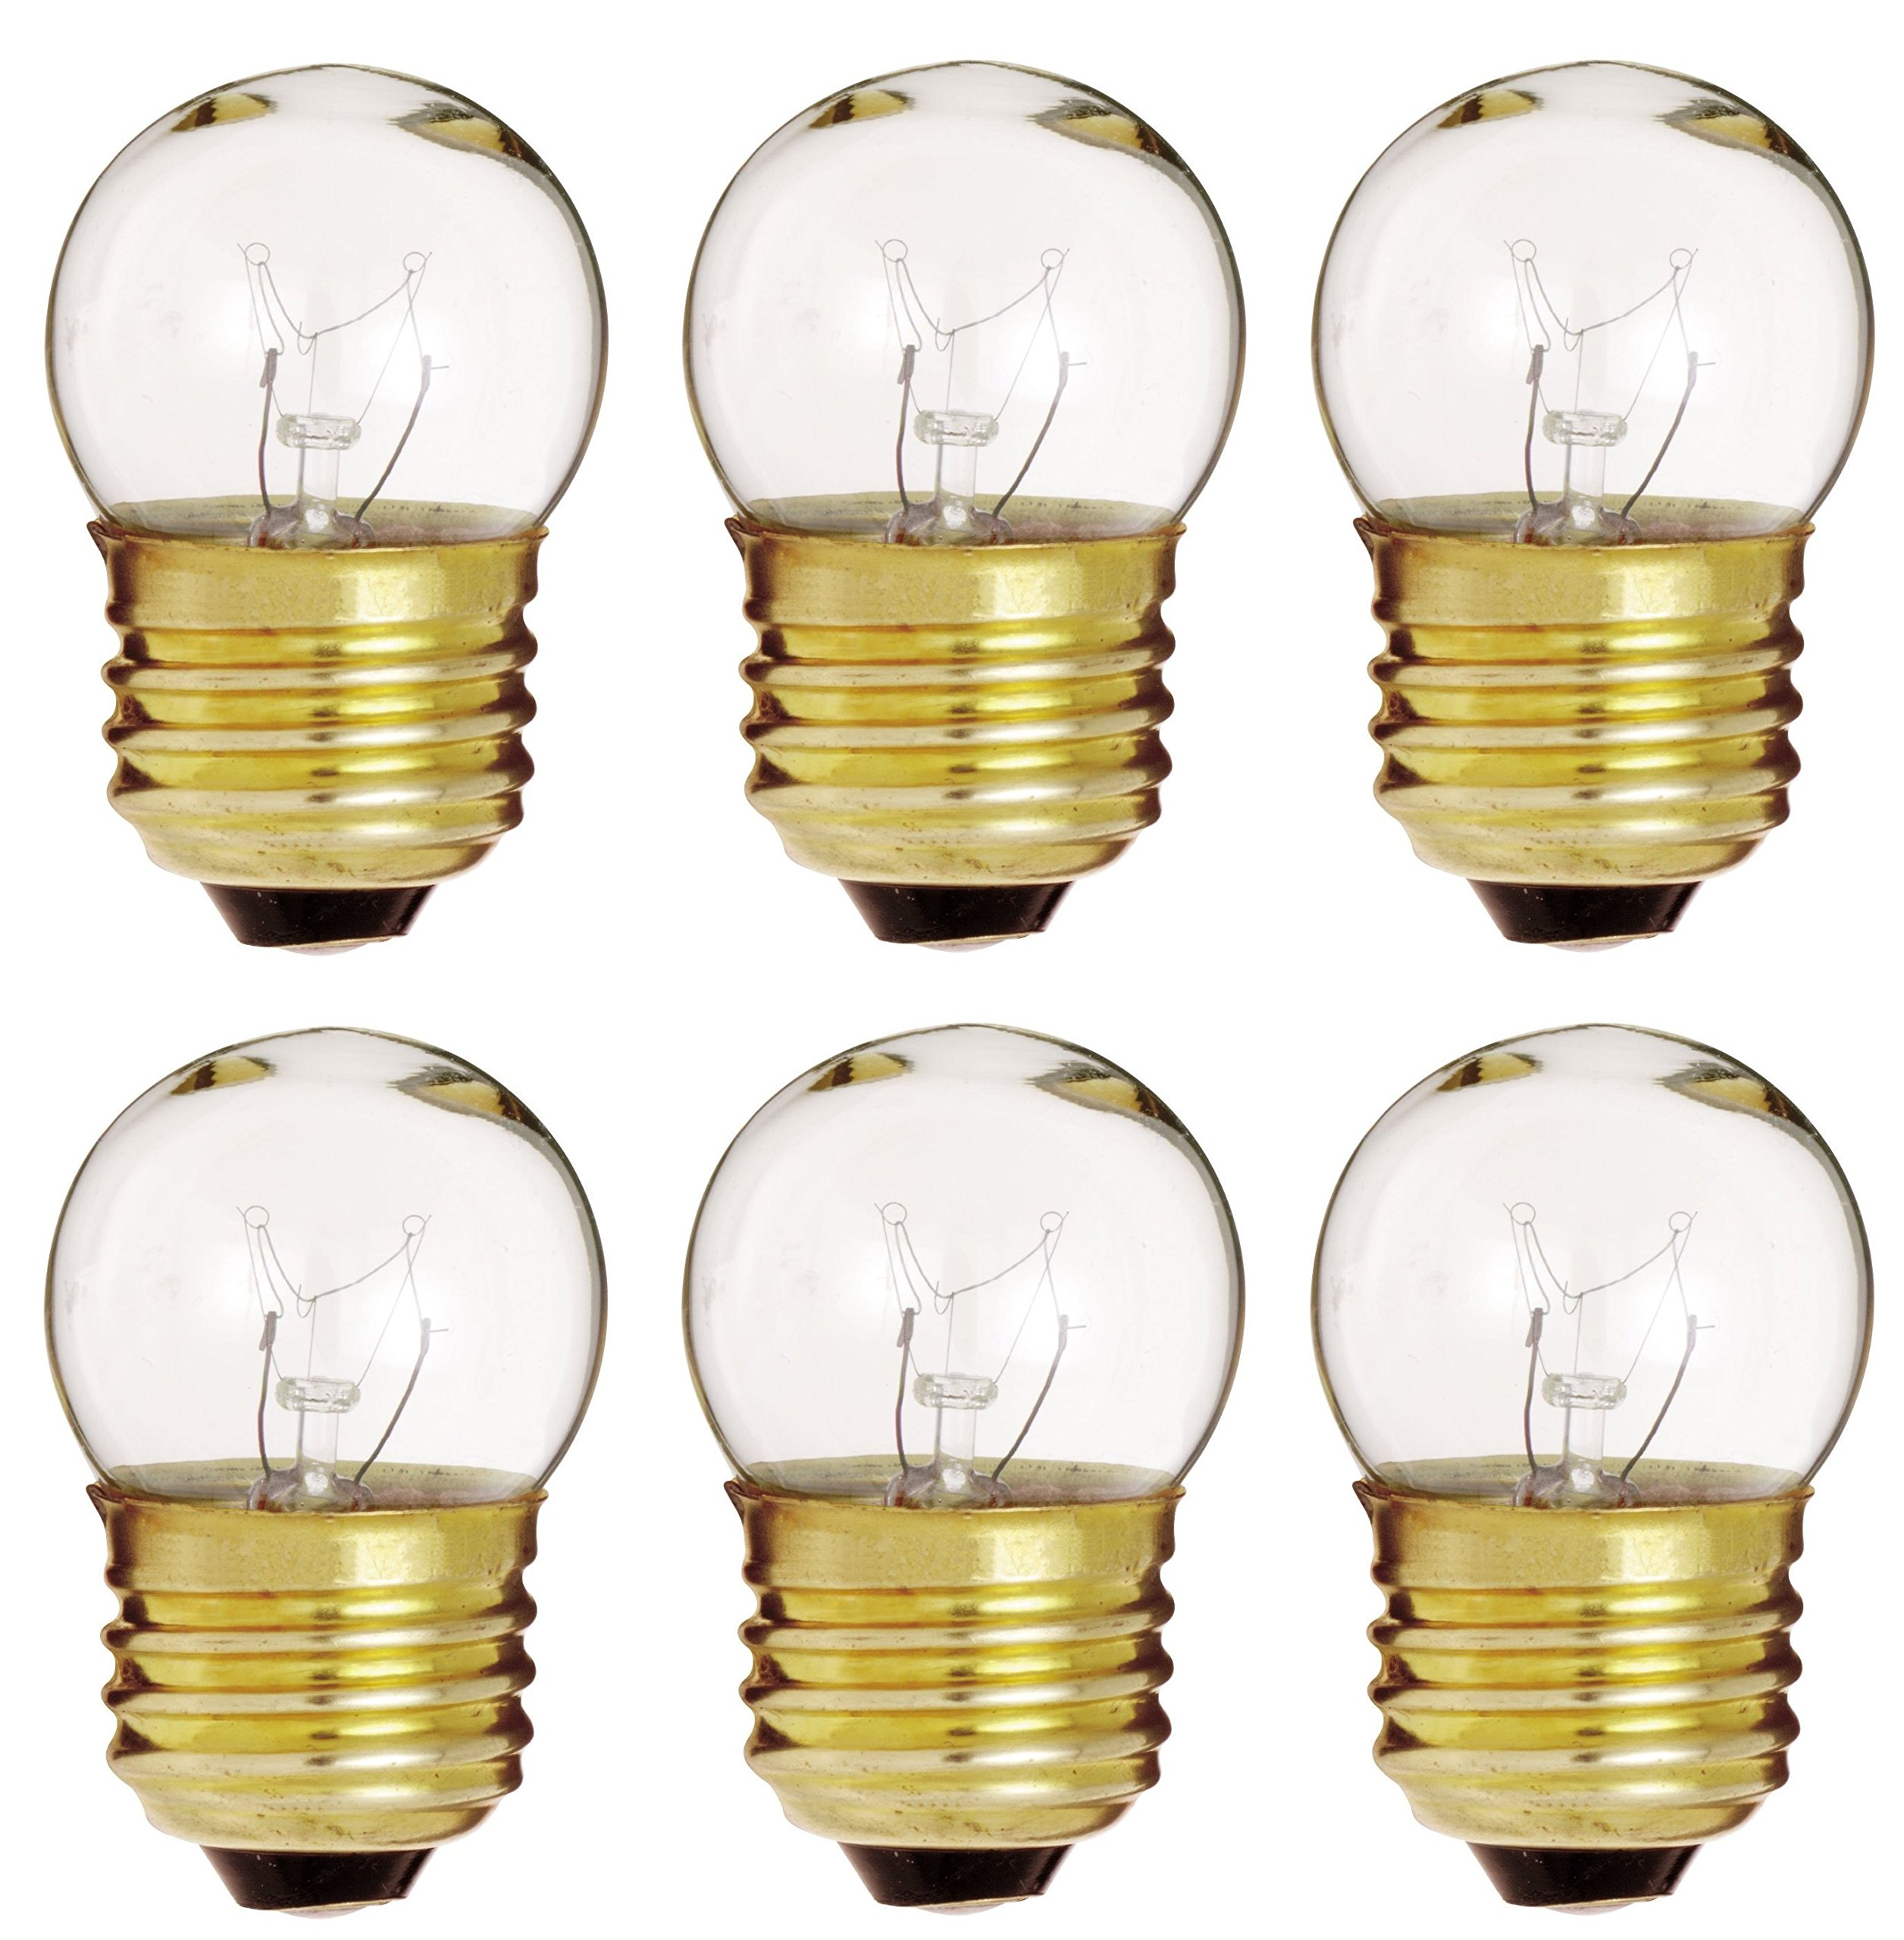 6 Pack of 7.5-Watt S11 Sign Indicator 7.5S11 Medium (E26) Base Clear Incandescent Light Bulb